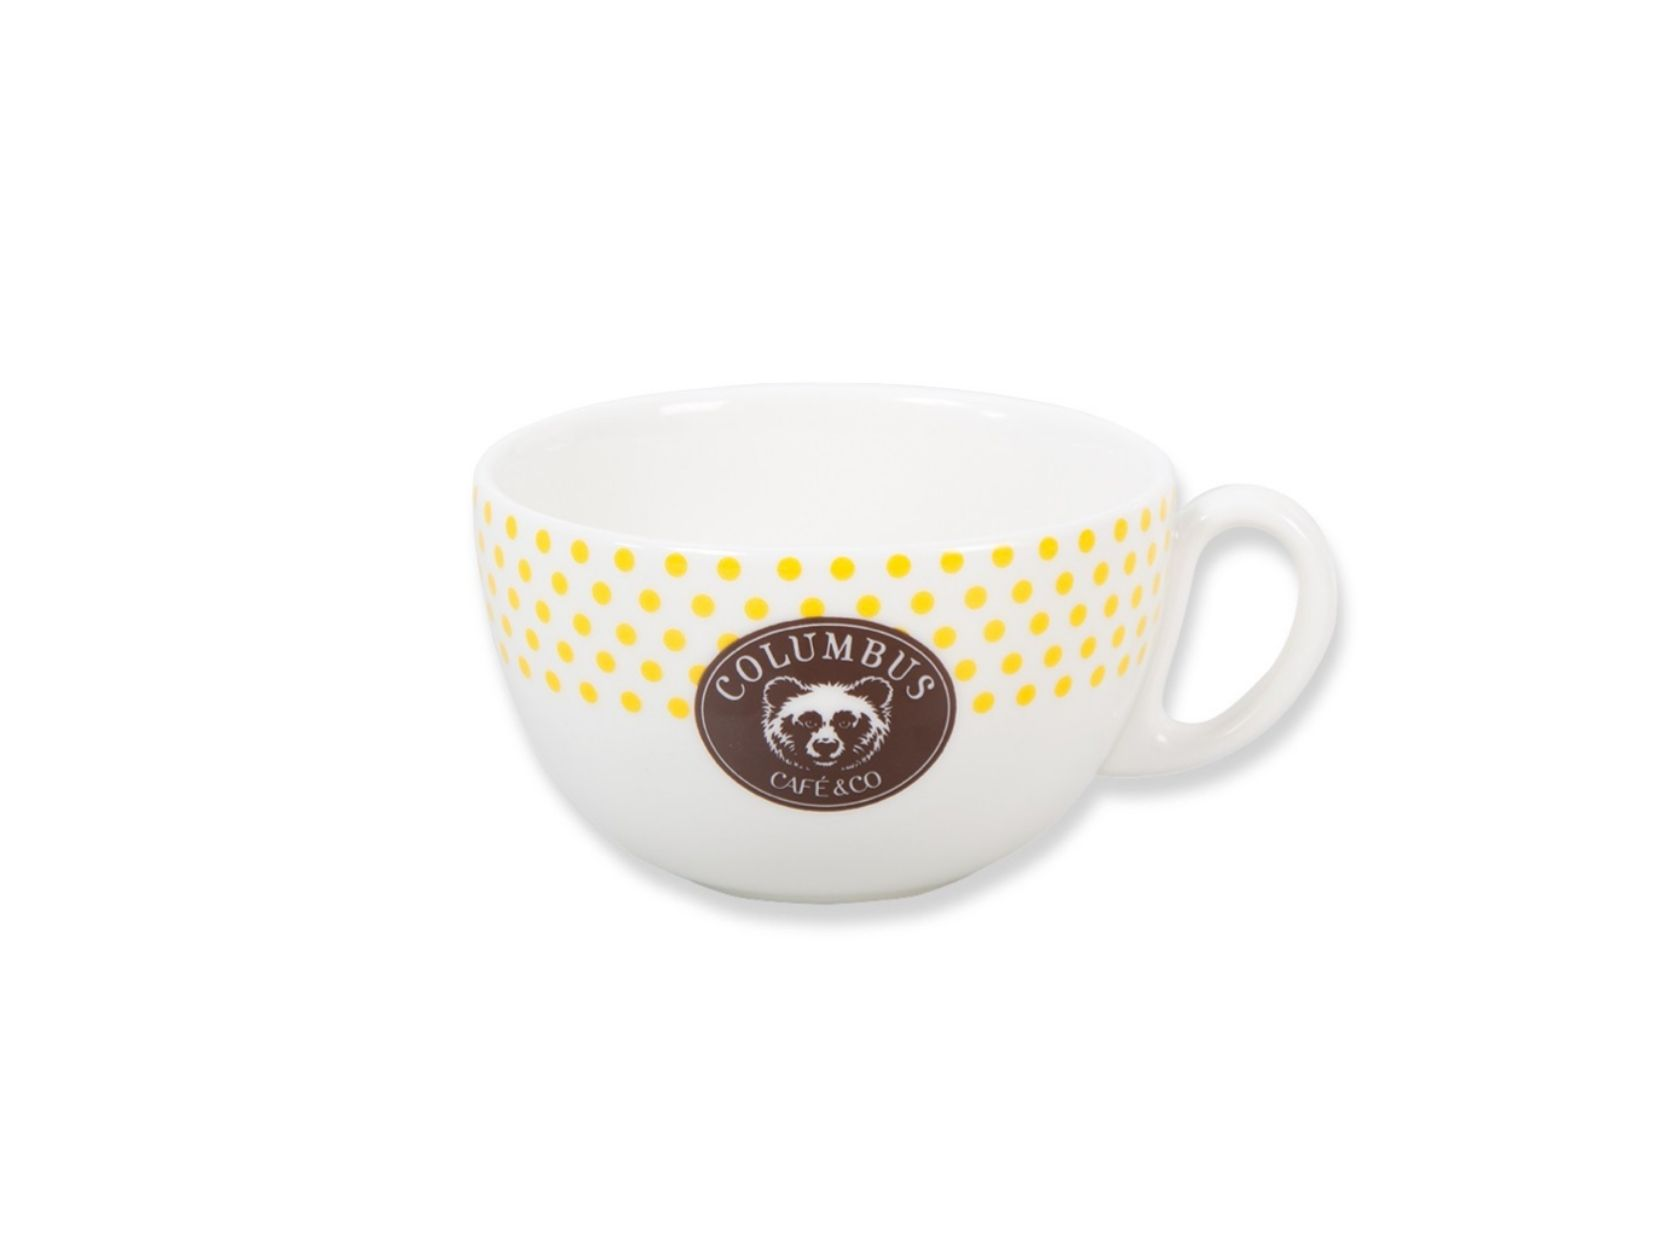 Columbus coffee cup – 37cl.